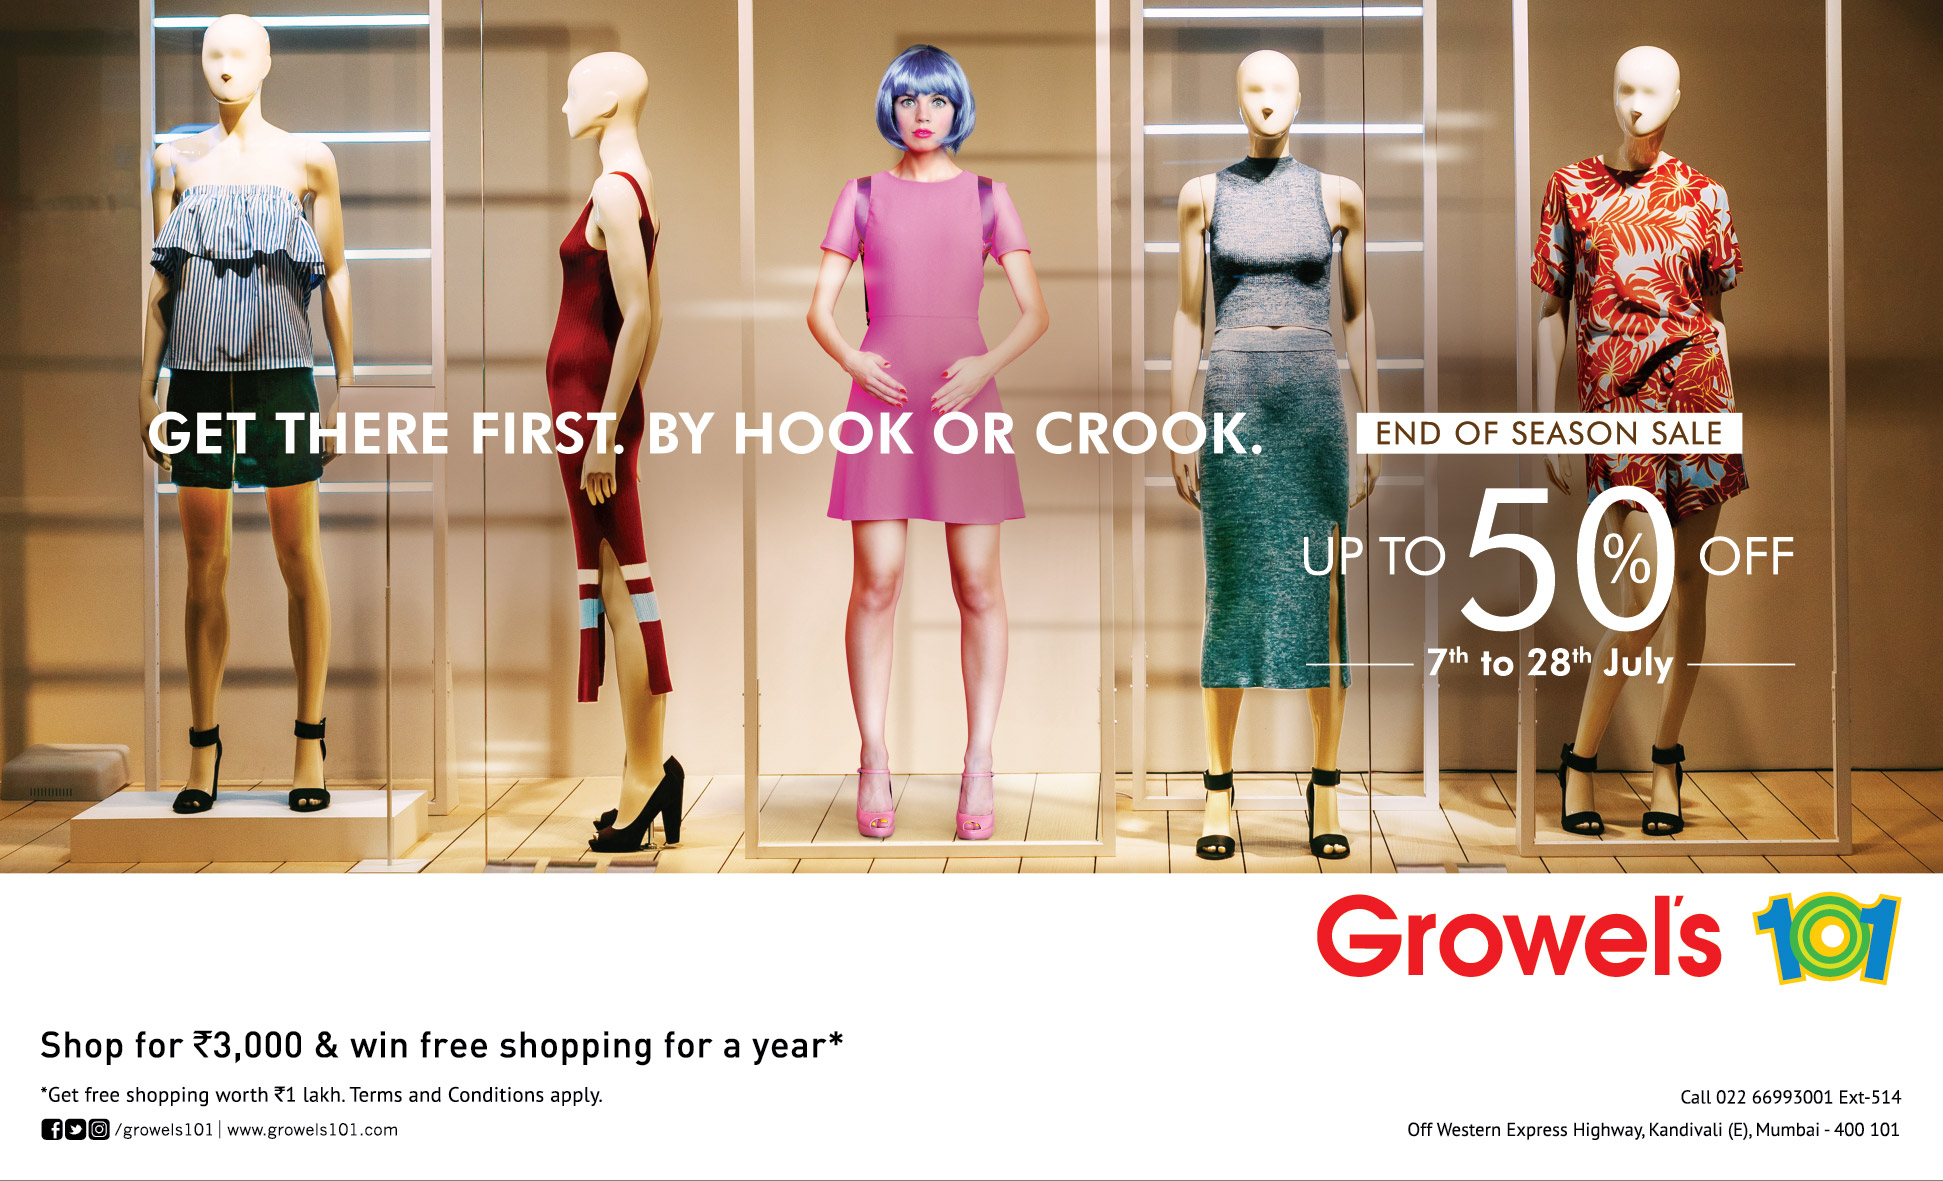 Shopaholic's Delight at Growel's 101 Mall